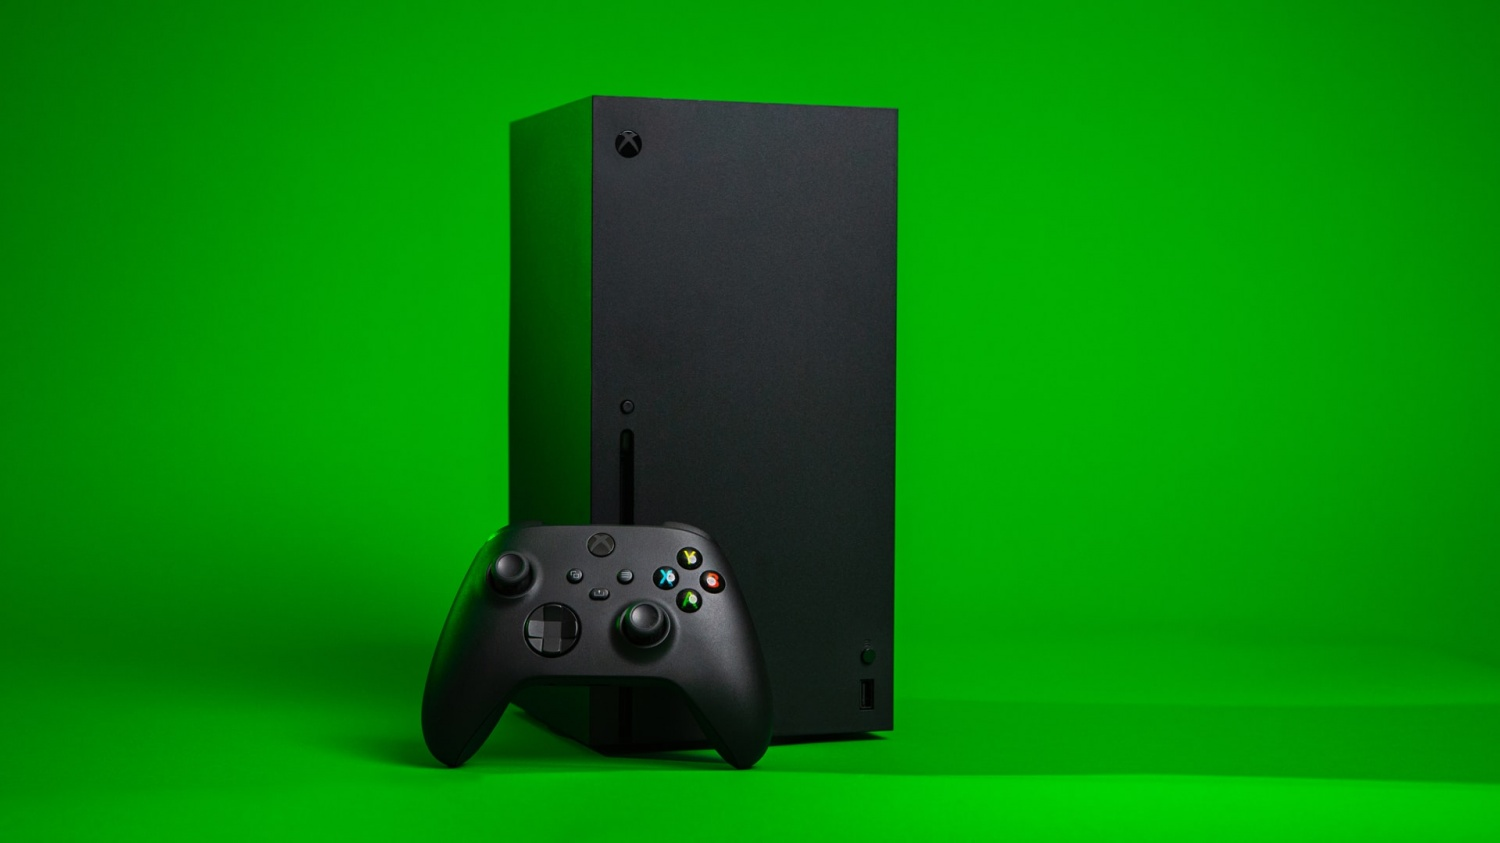 Xbox Series X Restock Trackers: Twitter Alerts, Online Retailers You Should Bookmark to Buy the Microsoft Console